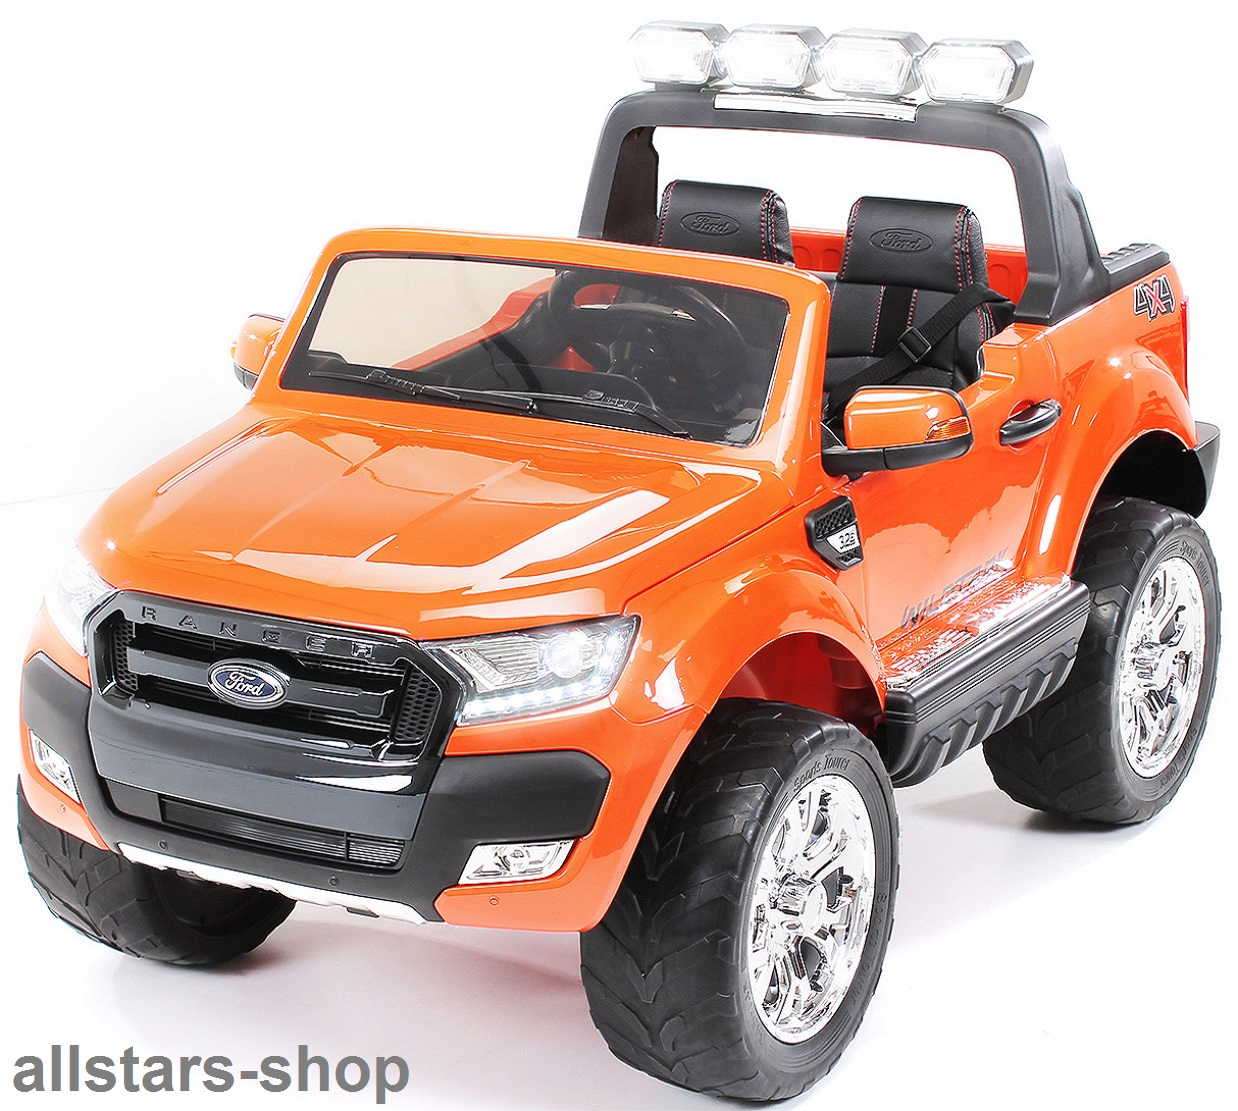 Elektroauto Kinderauto Actionbikes Kinderauto Ford Ranger Kinder E Auto 2 Sitzer 2 Kinder Orange Lackiert